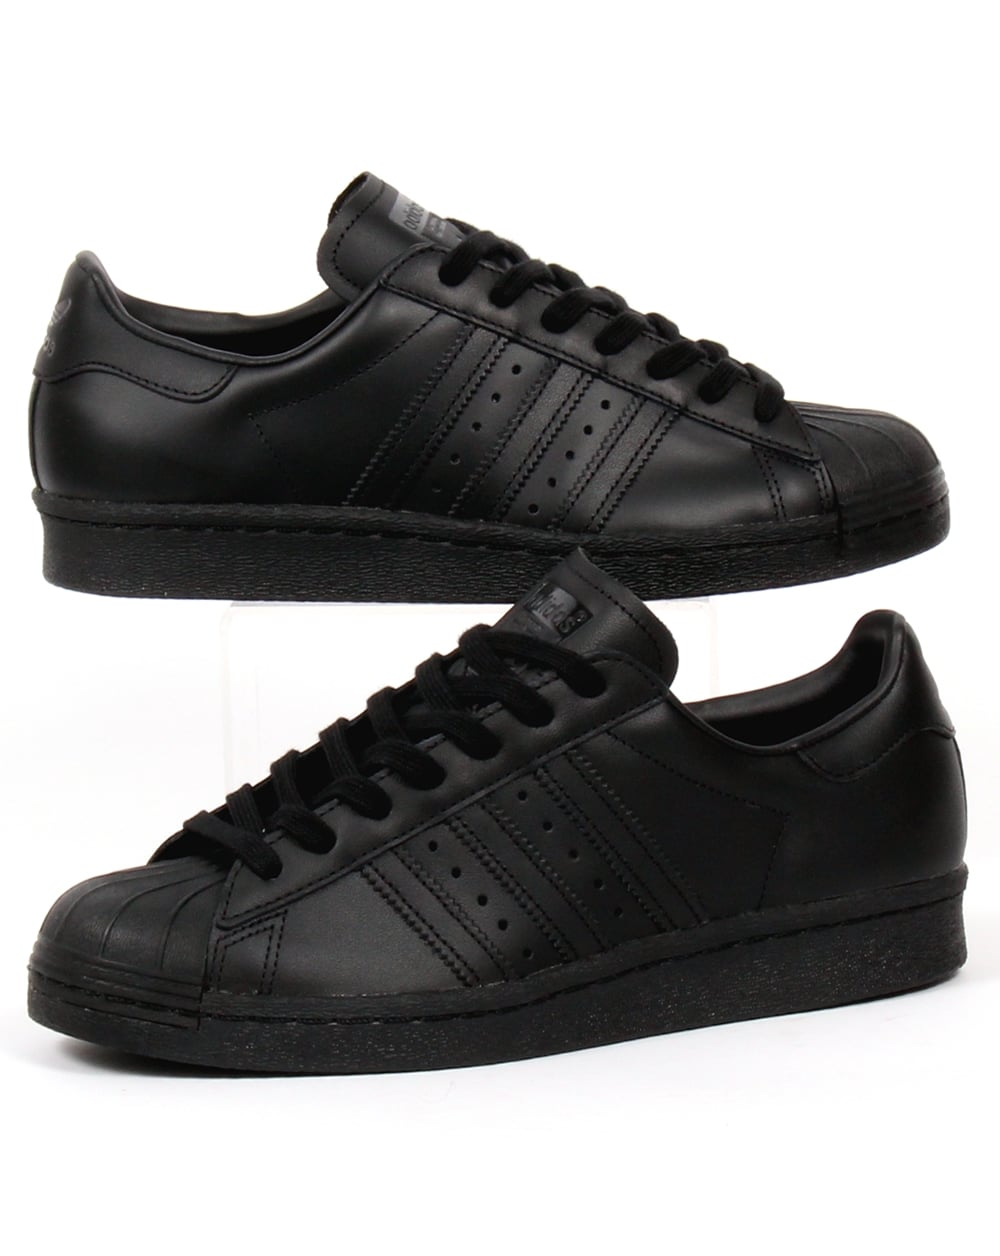 adidas superstar all black mens